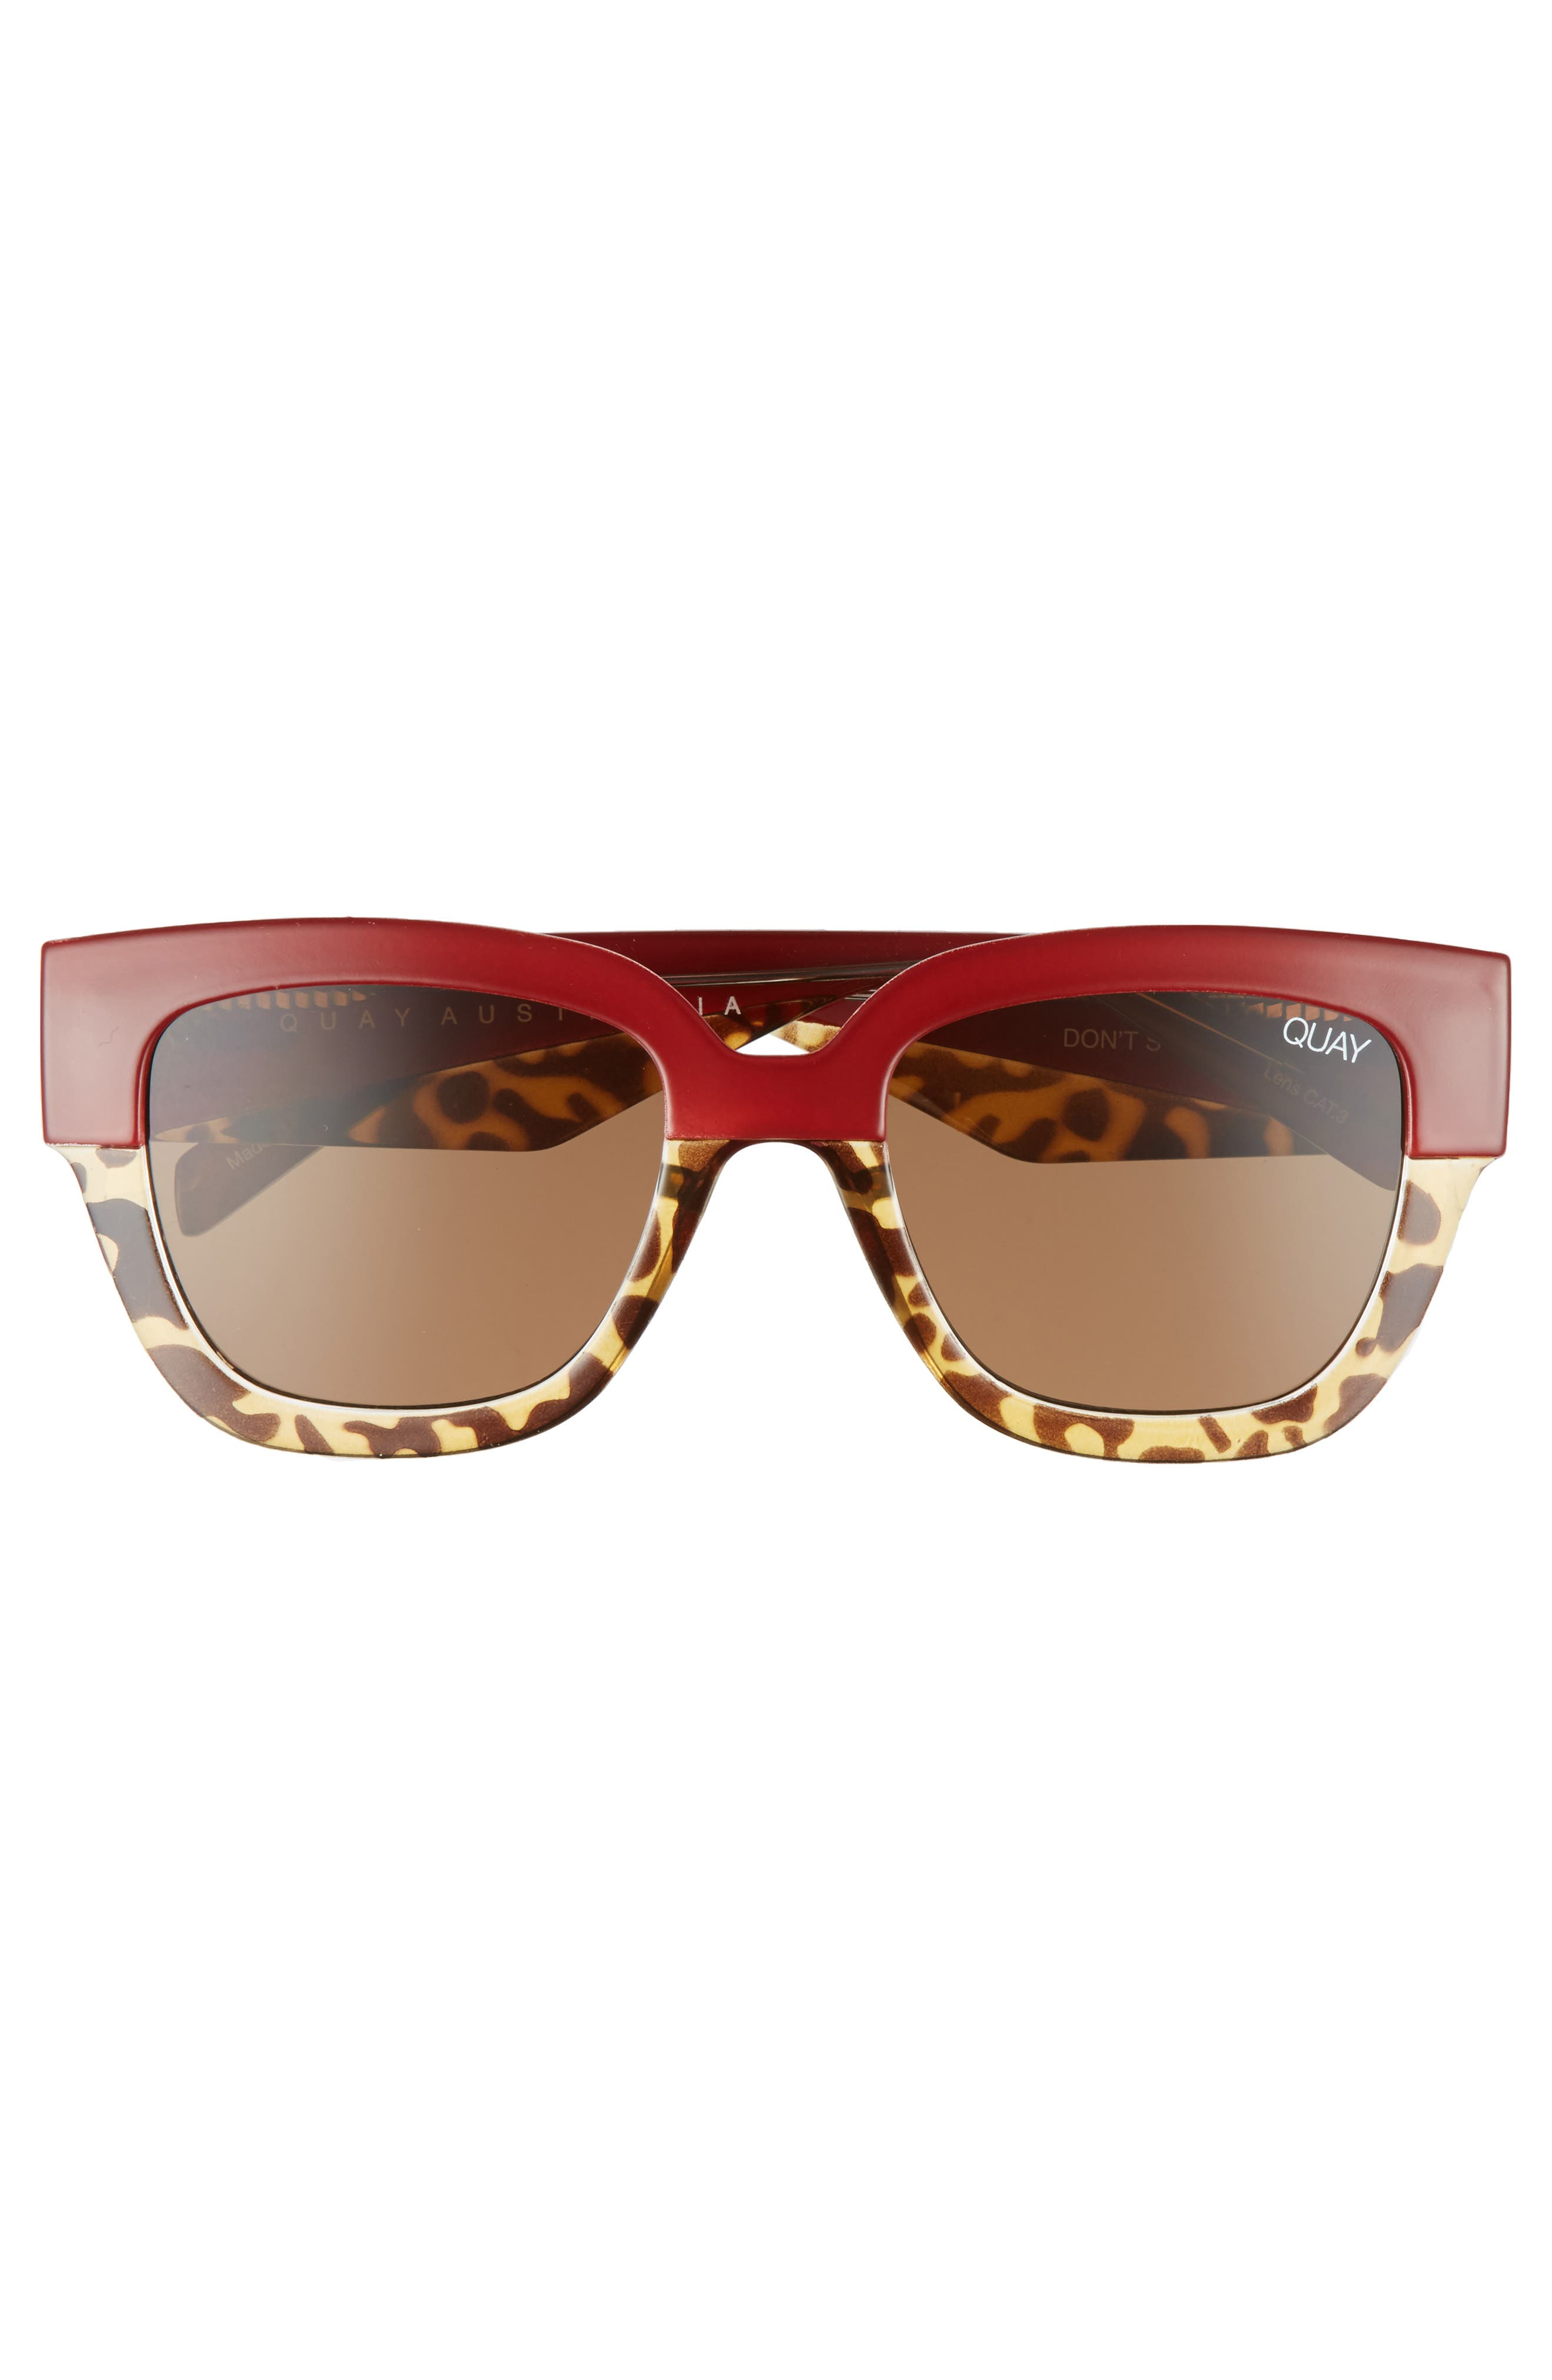 55mm Don't Stop Sunglasses,                             Alternate thumbnail 6, color,                             Red/ Tort/ Brown